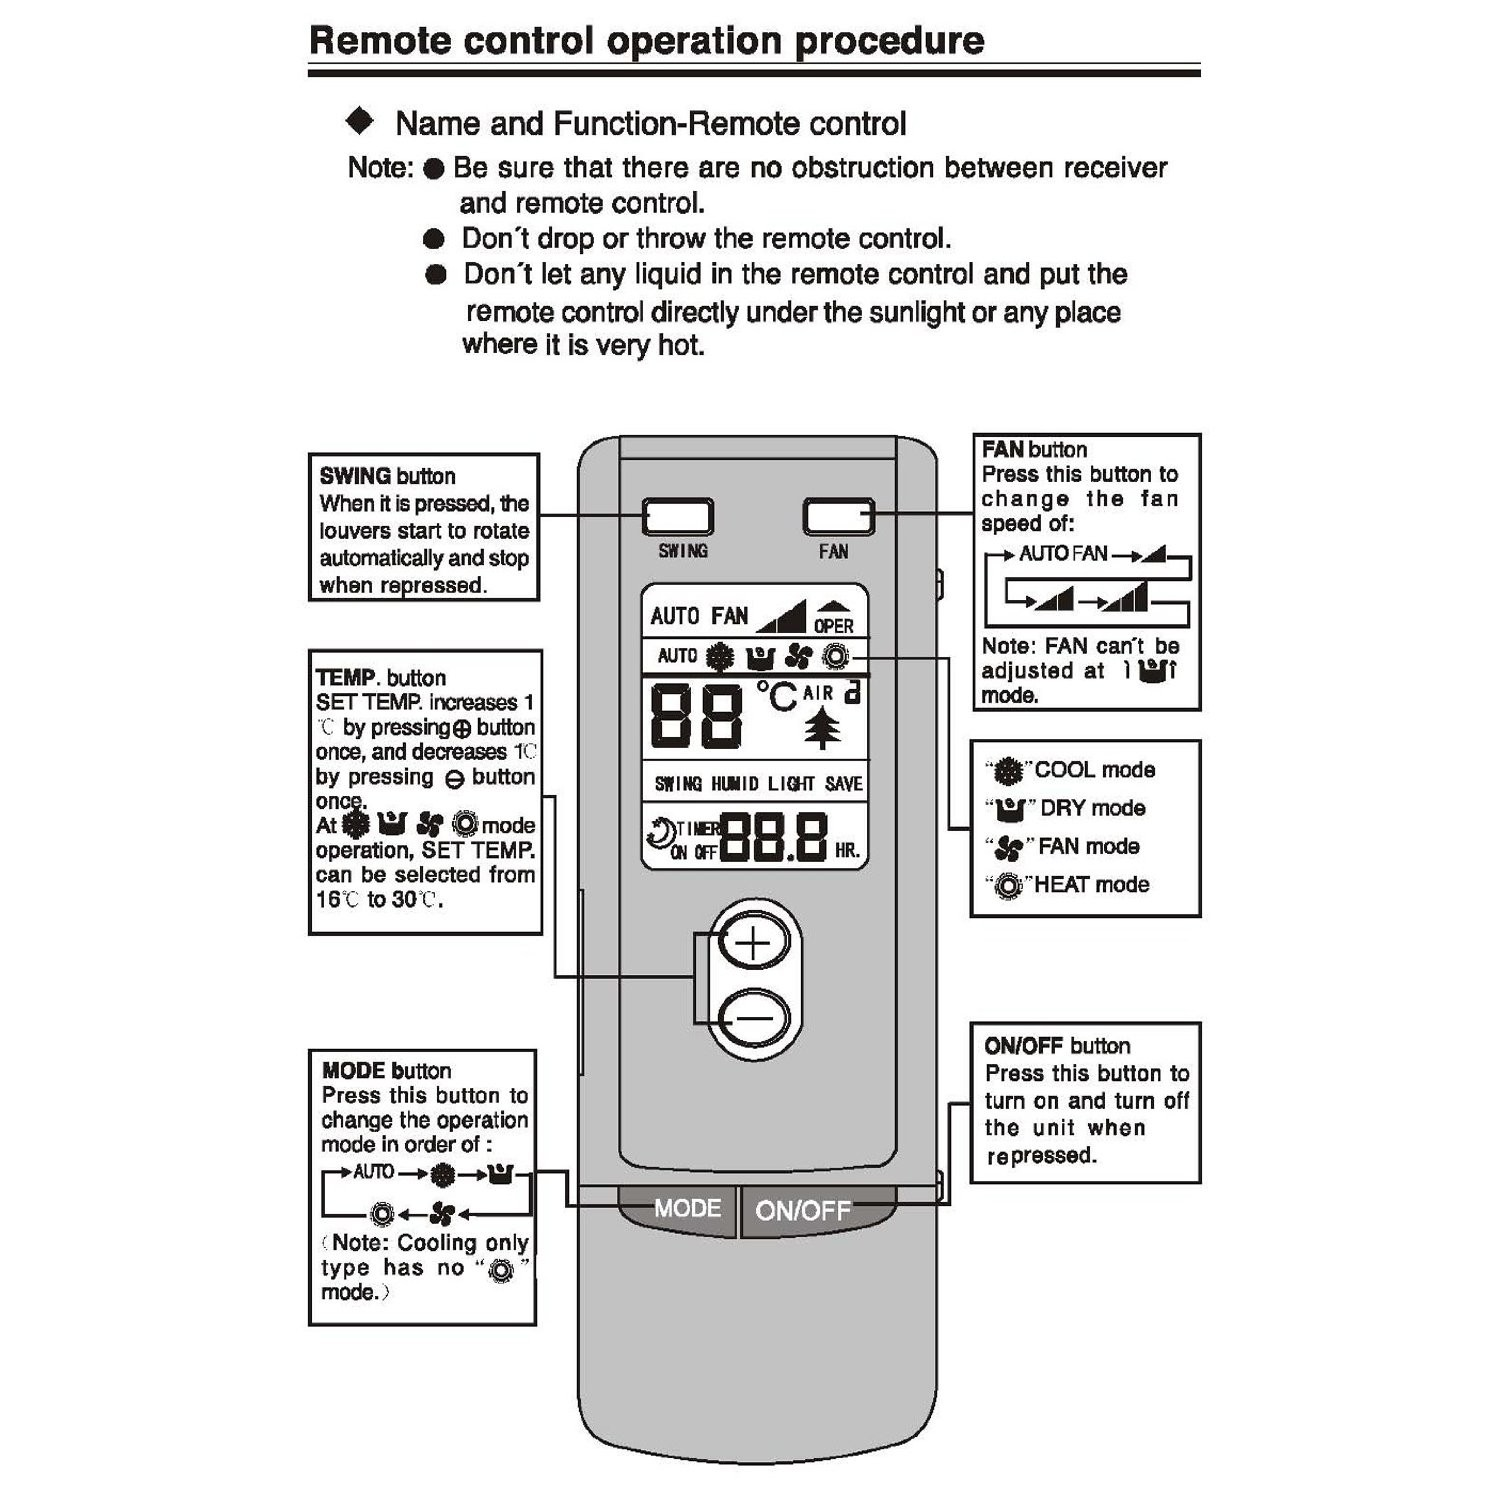 Central Air Conditioner Ratings And Reviews >> York air conditioner manual remote control / X8x token ...